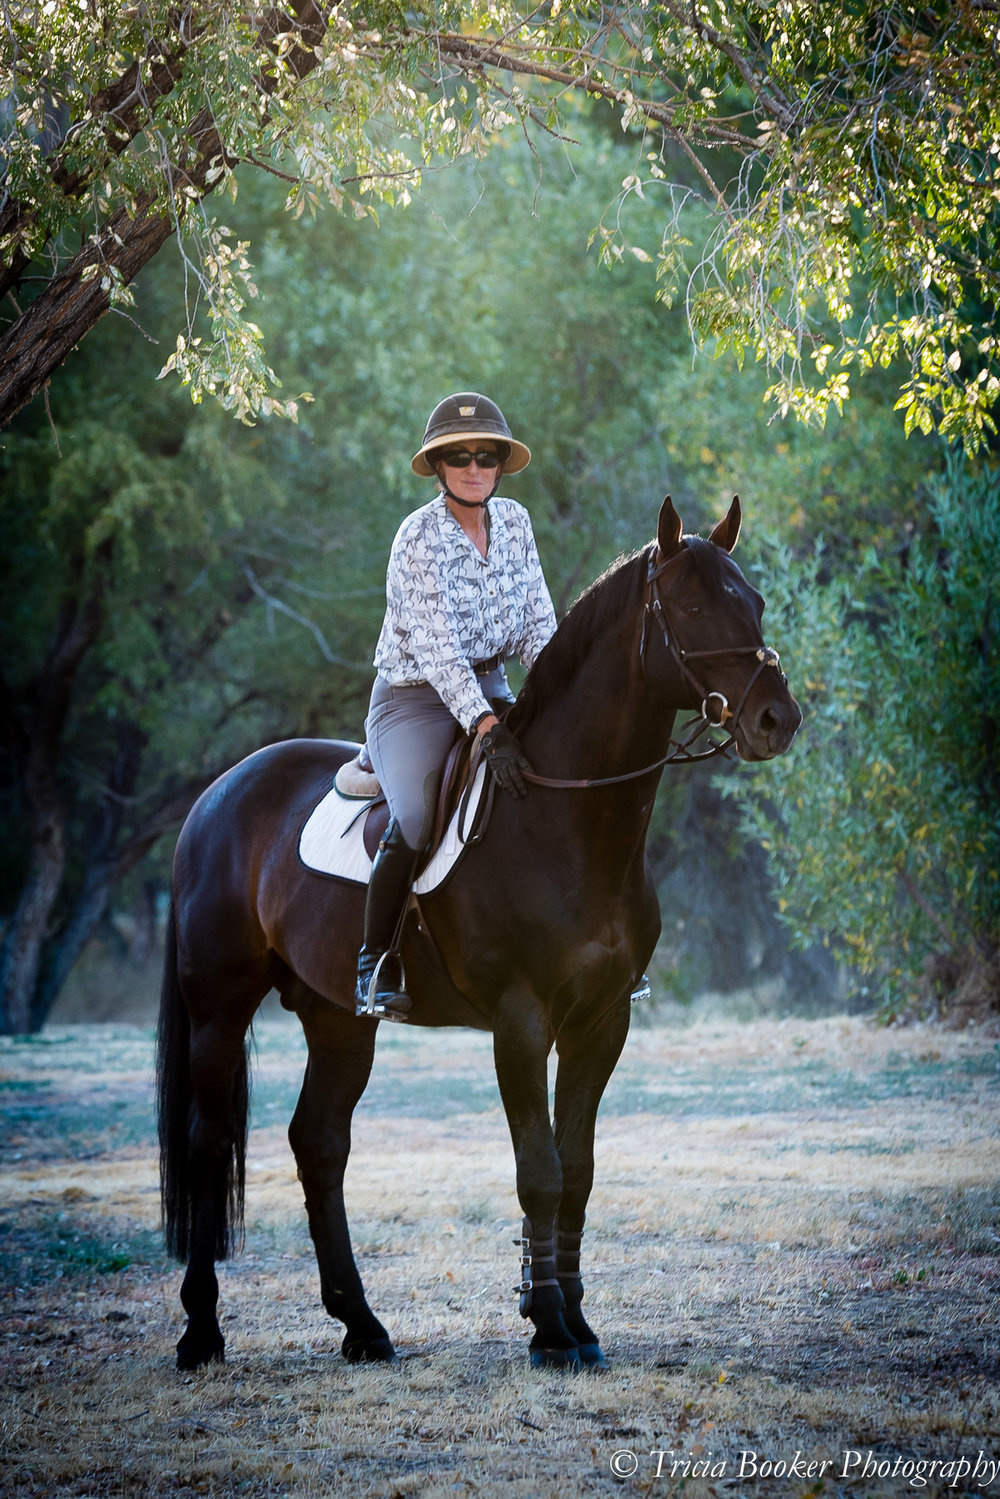 "A Passion For Education - ""Although I've spent my life based in Nevada, I travel the country extensively teaching, judging and volunteering my time for the betterment of the sport. I've served on countless USEF and USHJA committees that focus on education, including those that educate our licensed officials, professional trainers and emerging athletes, just to name a few. My passion is education and improving the lives of humans and horses alike."" — Julie Winkel, Goodtoknow Horses CEO"